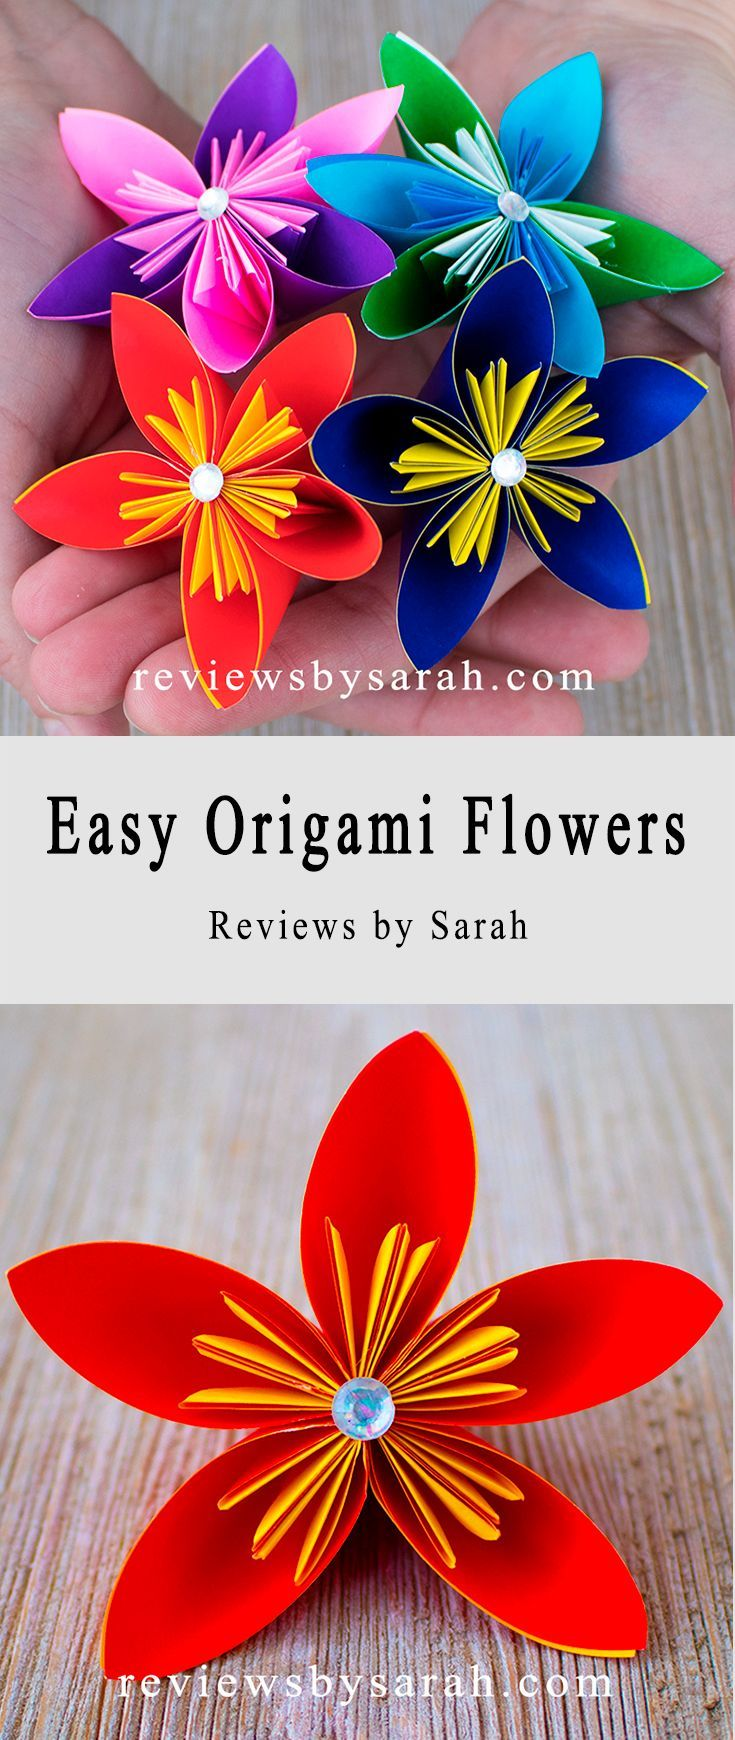 How to make lavender paper flower   Easy origami flowers for ...   1740x735